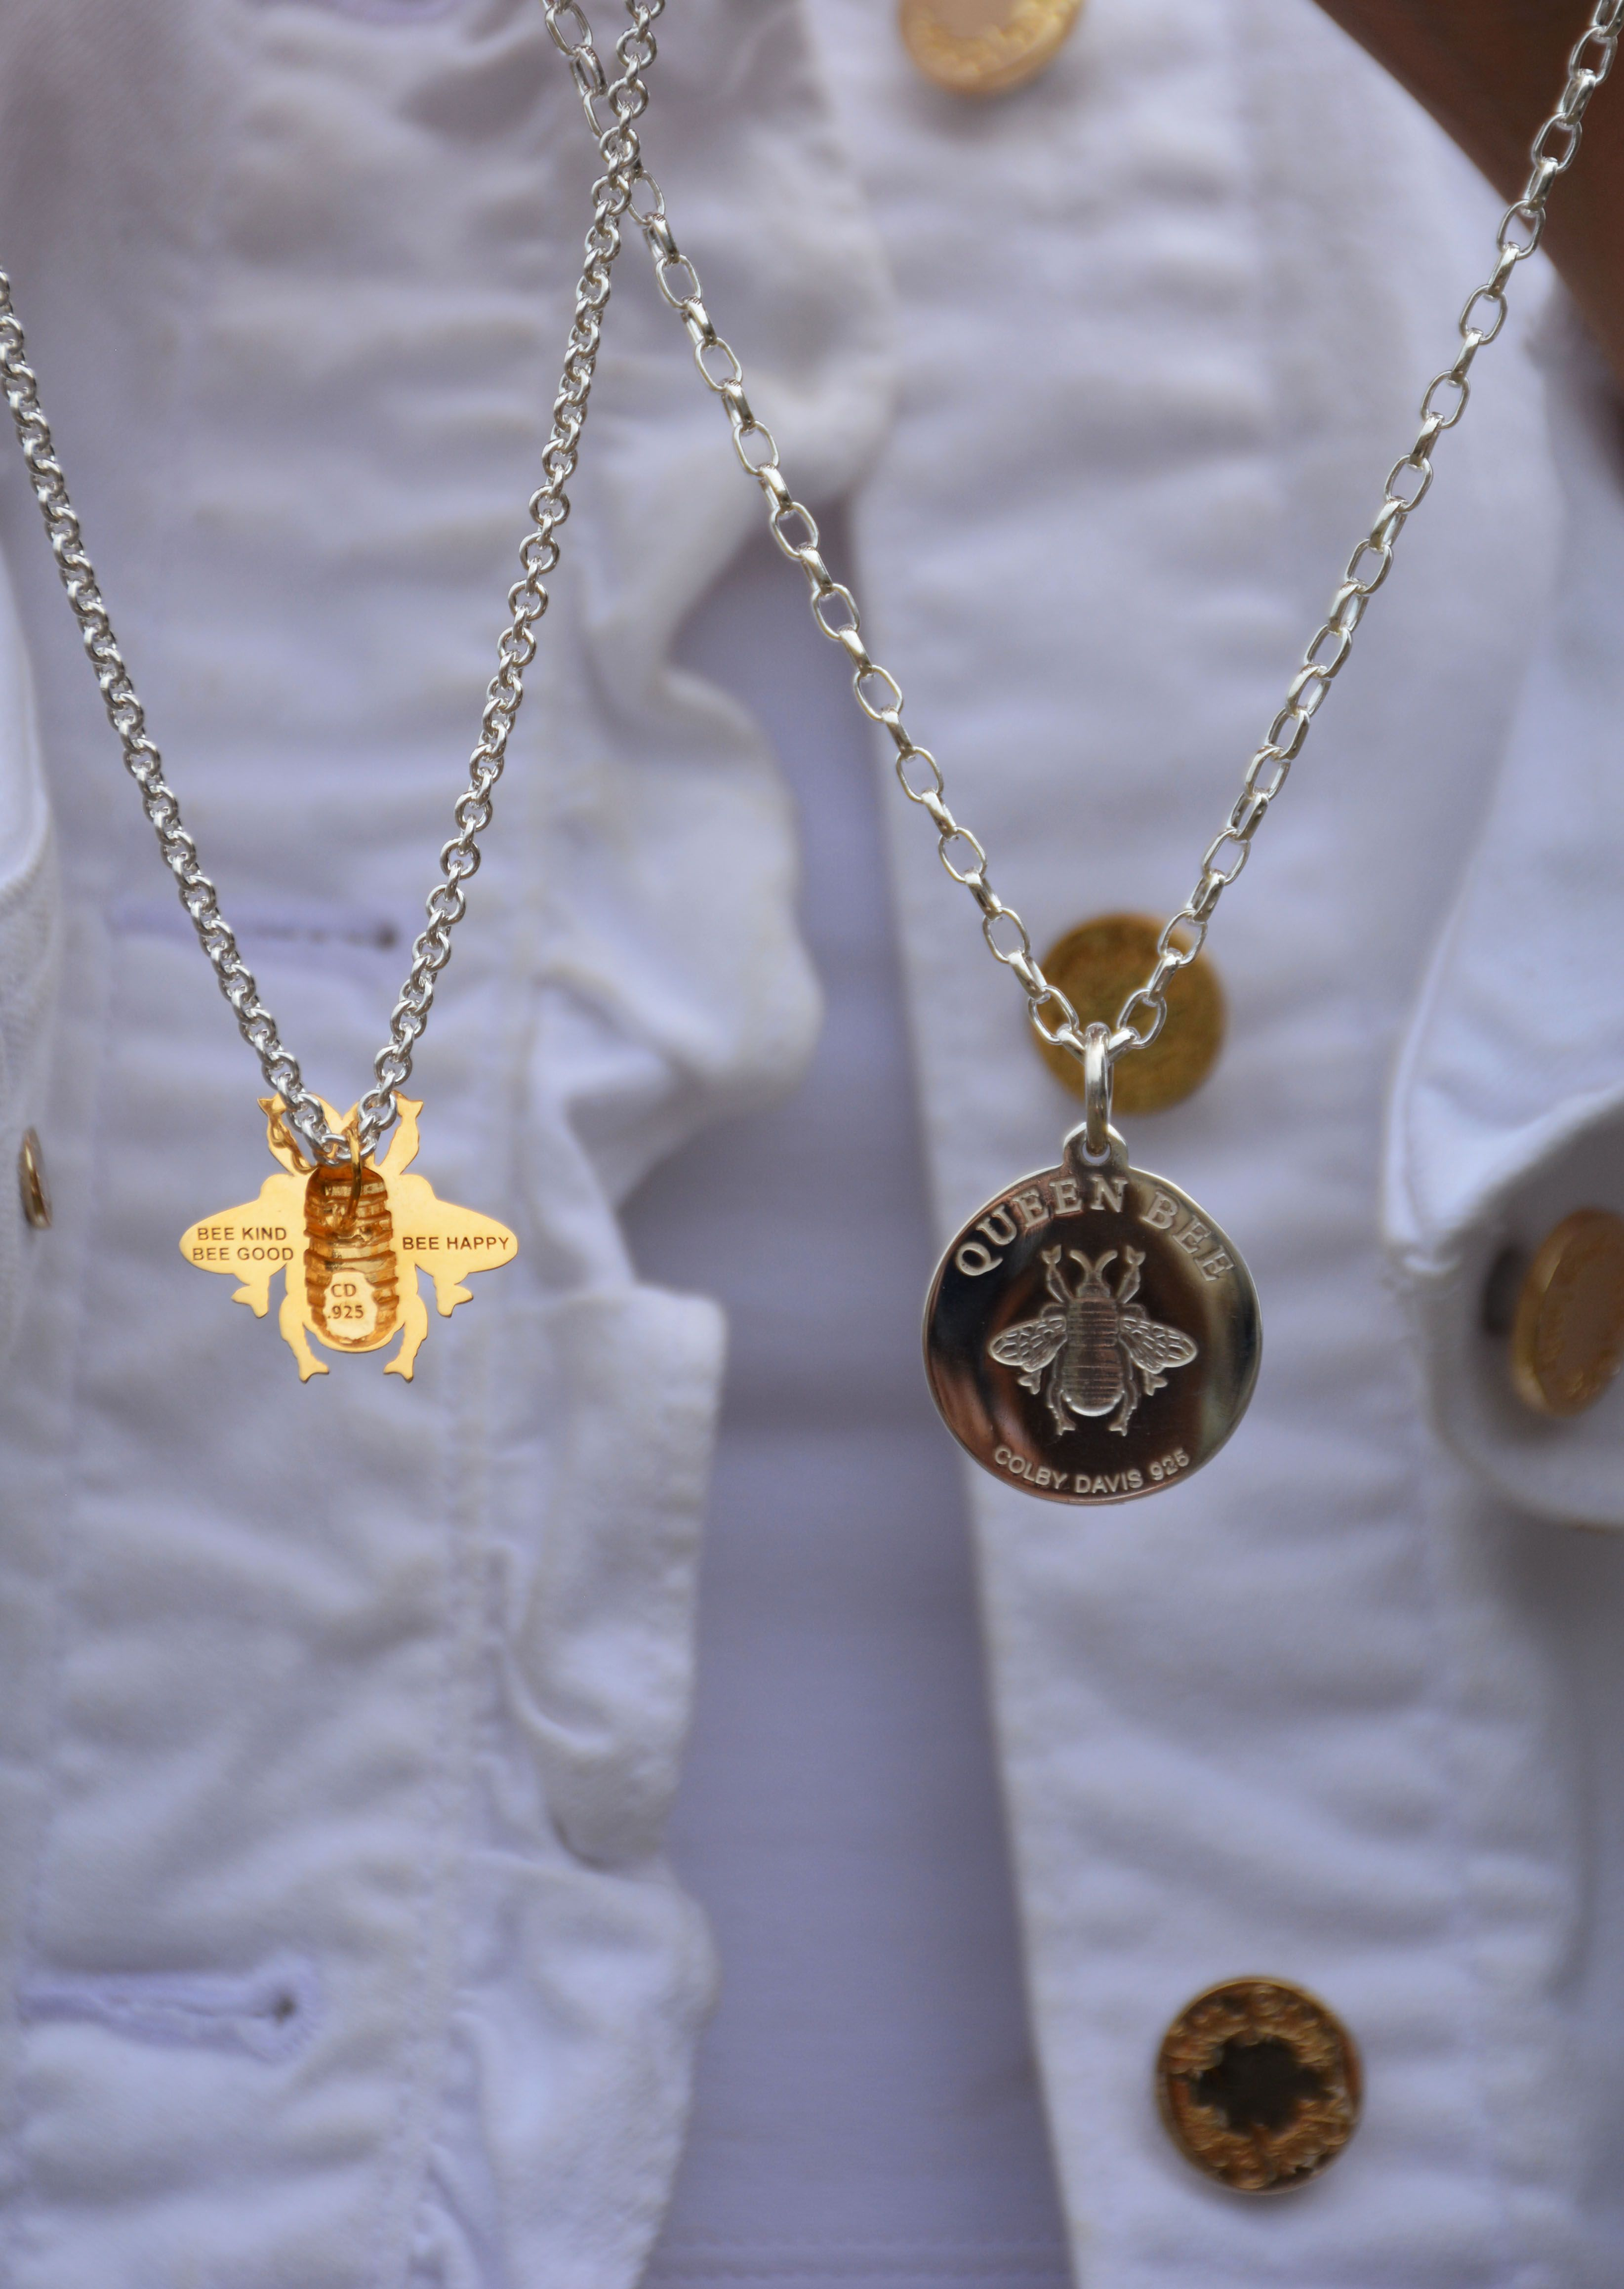 Pin By Colby Davis Of Boston On Our Colby Davis Jewelry In 2020 Jewelry 18k Jewelry Necklace